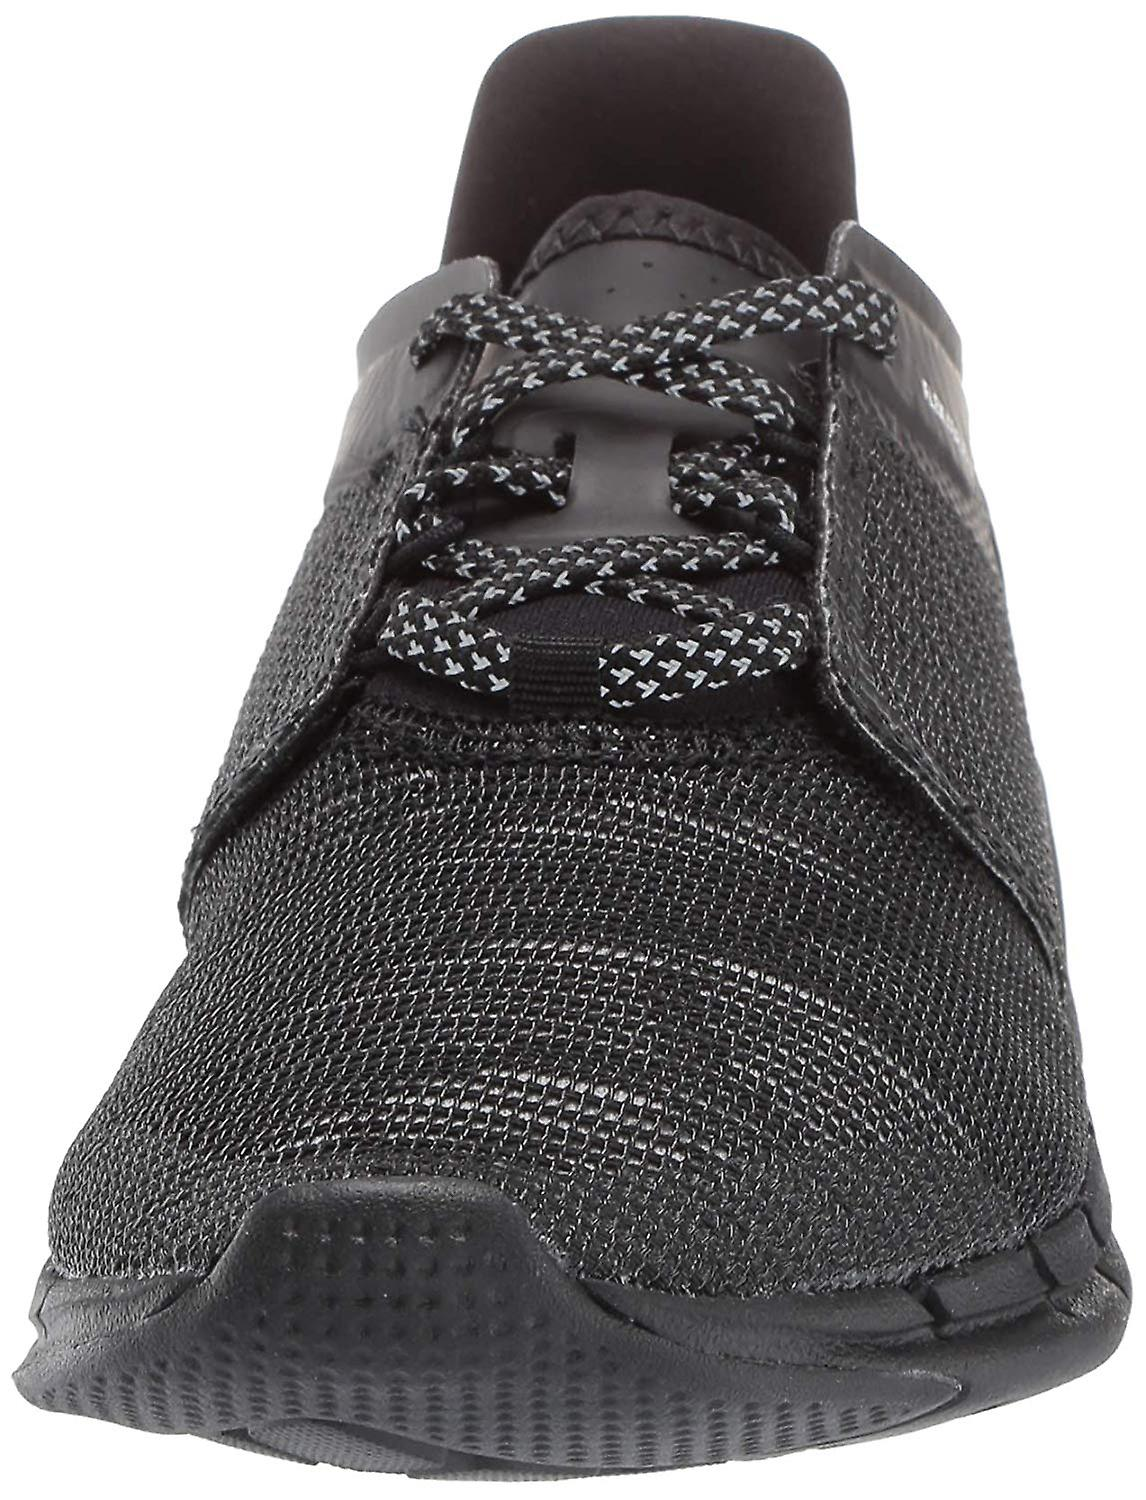 Reebok Women's Fast Flexweave Nt Cross Trainer